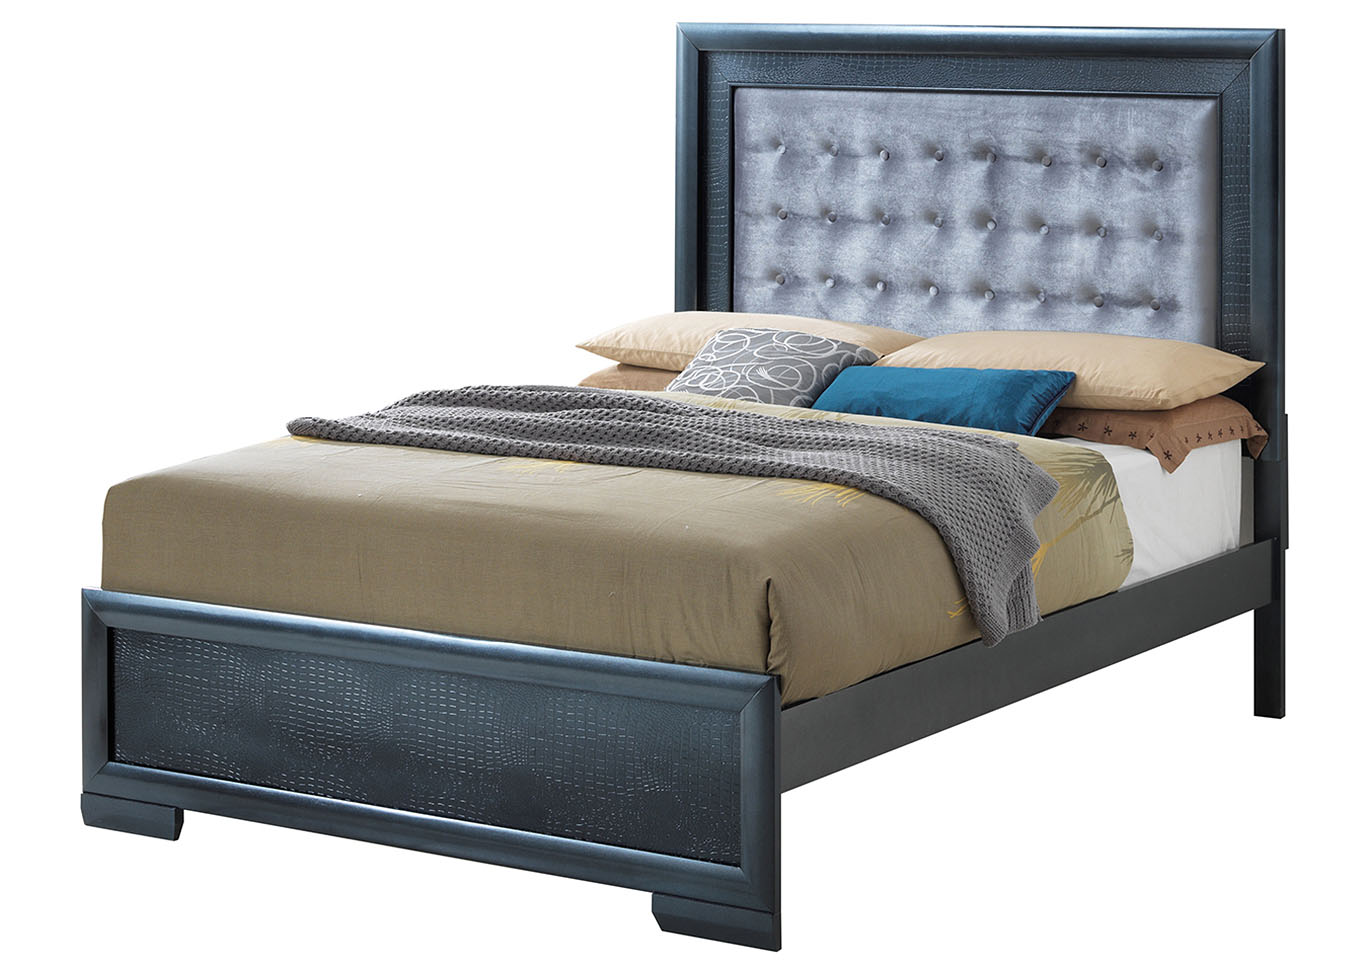 Charcoal King Panel Bed,Glory Furniture